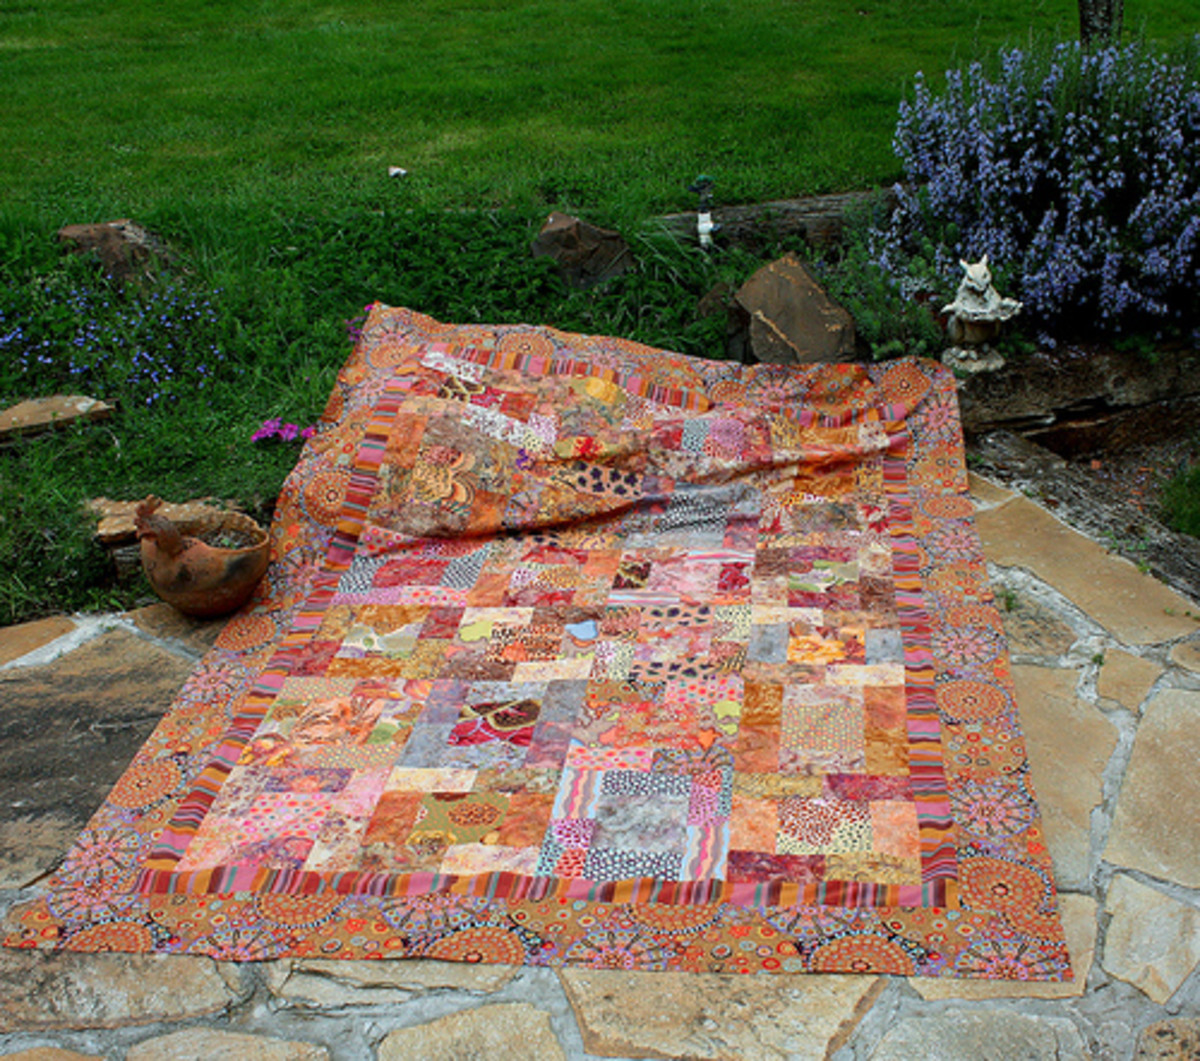 Batik quilt in warm colors